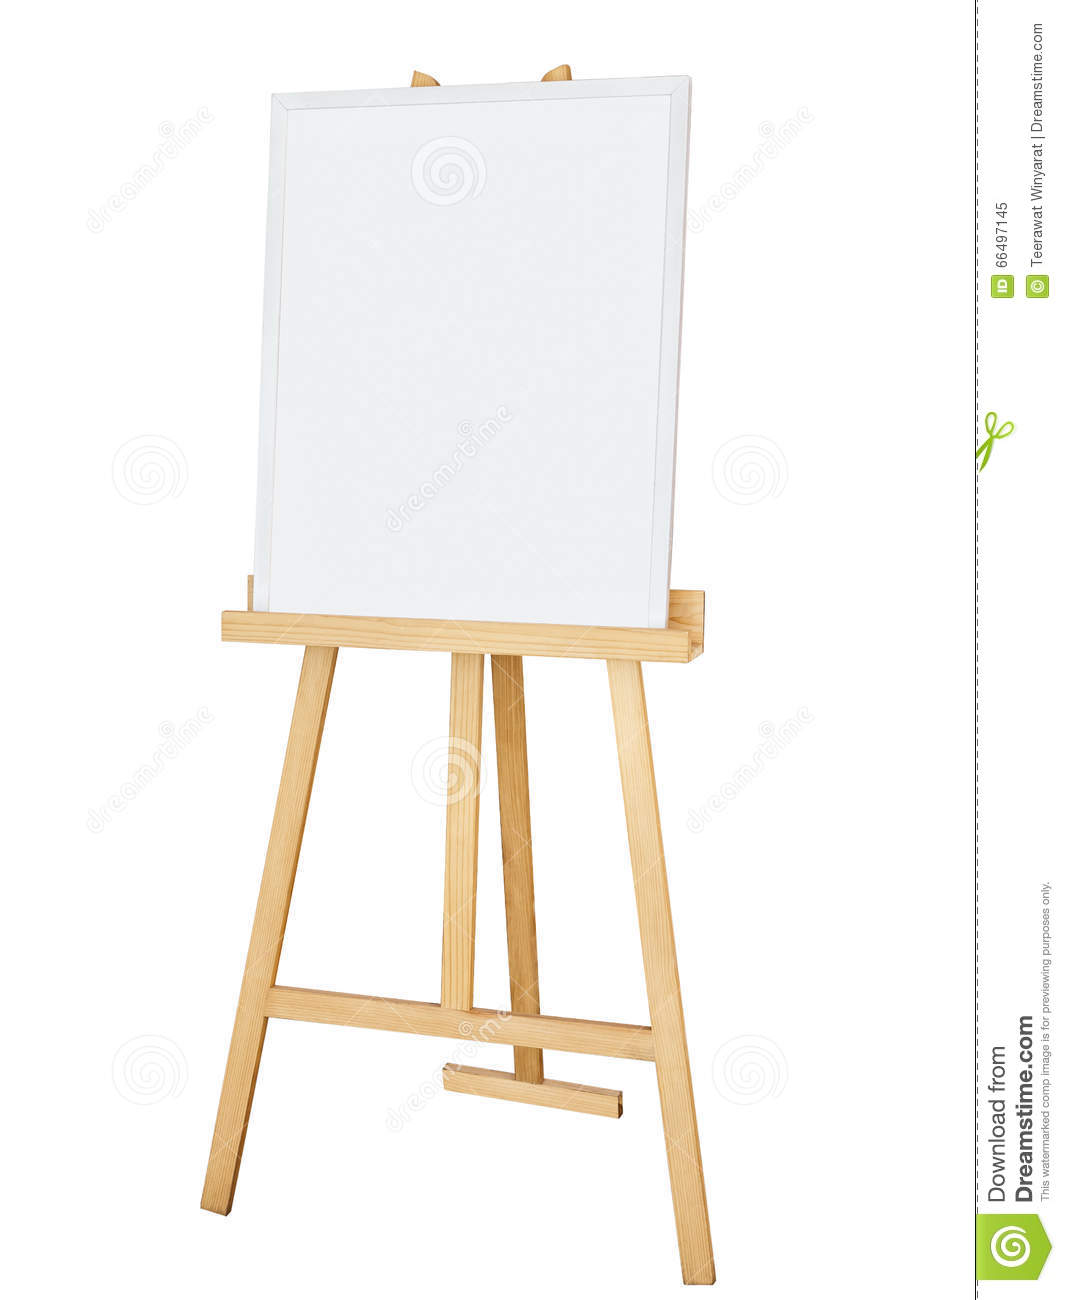 Amazing photo of  Photo: Painting stand wooden easel with blank canvas poster sign board with #85A724 color and 1065x1300 pixels